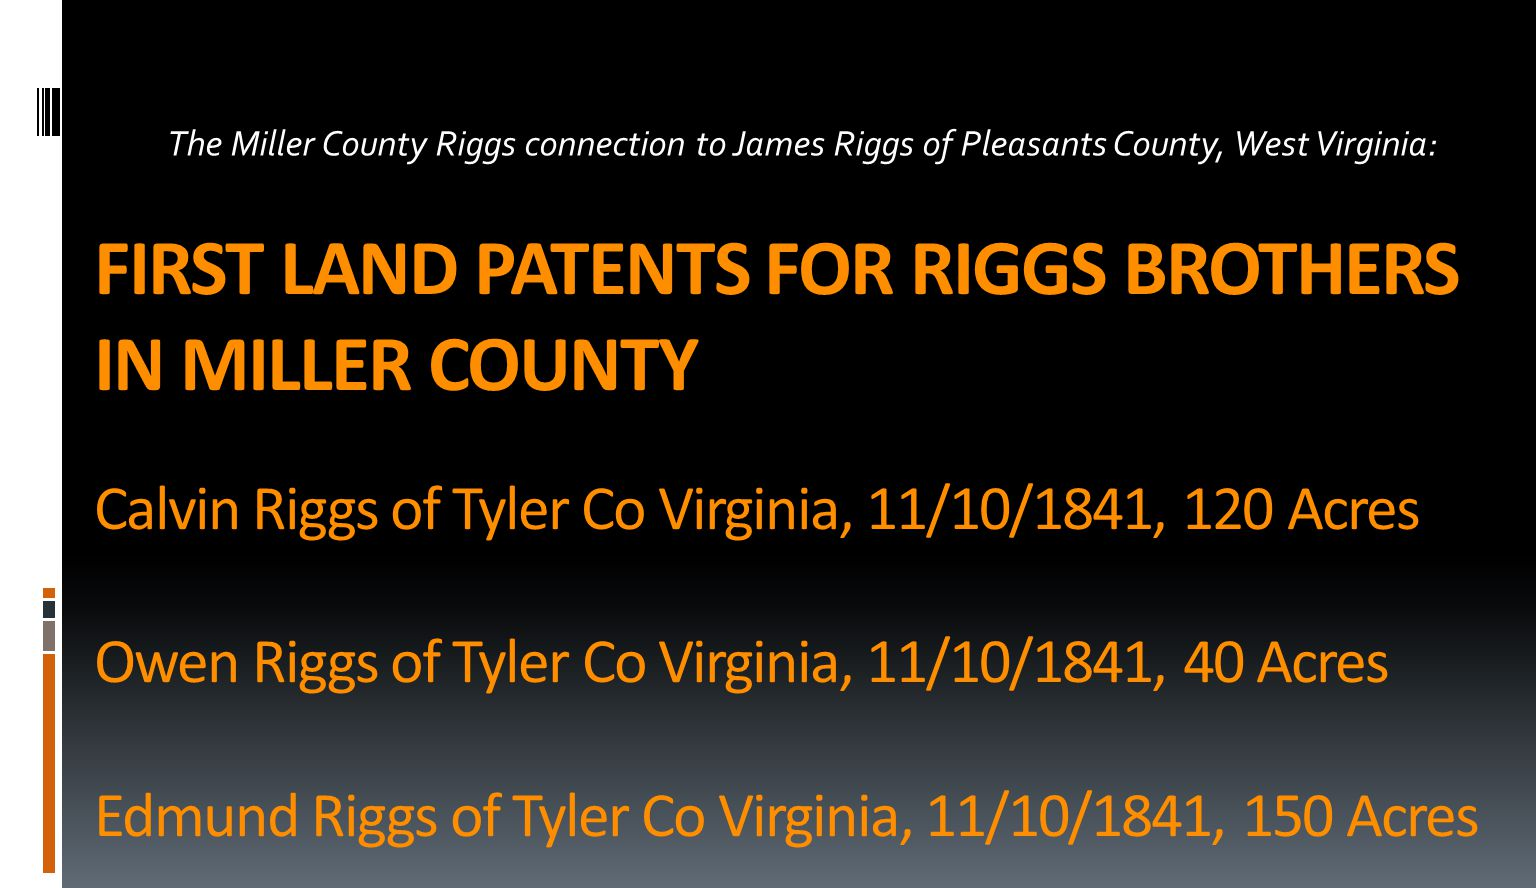 FIRST LAND PATENTS FOR RIGGS BROTHERS IN MILLER COUNTY Calvin Riggs of Tyler Co Virginia, 11/10/1841, 120 Acres Owen Riggs of Tyler Co Virginia, 11/10/1841, 40 Acres Edmund Riggs of Tyler Co Virginia, 11/10/1841, 150 Acres The Miller County Riggs connection to James Riggs of Pleasants County, West Virginia: